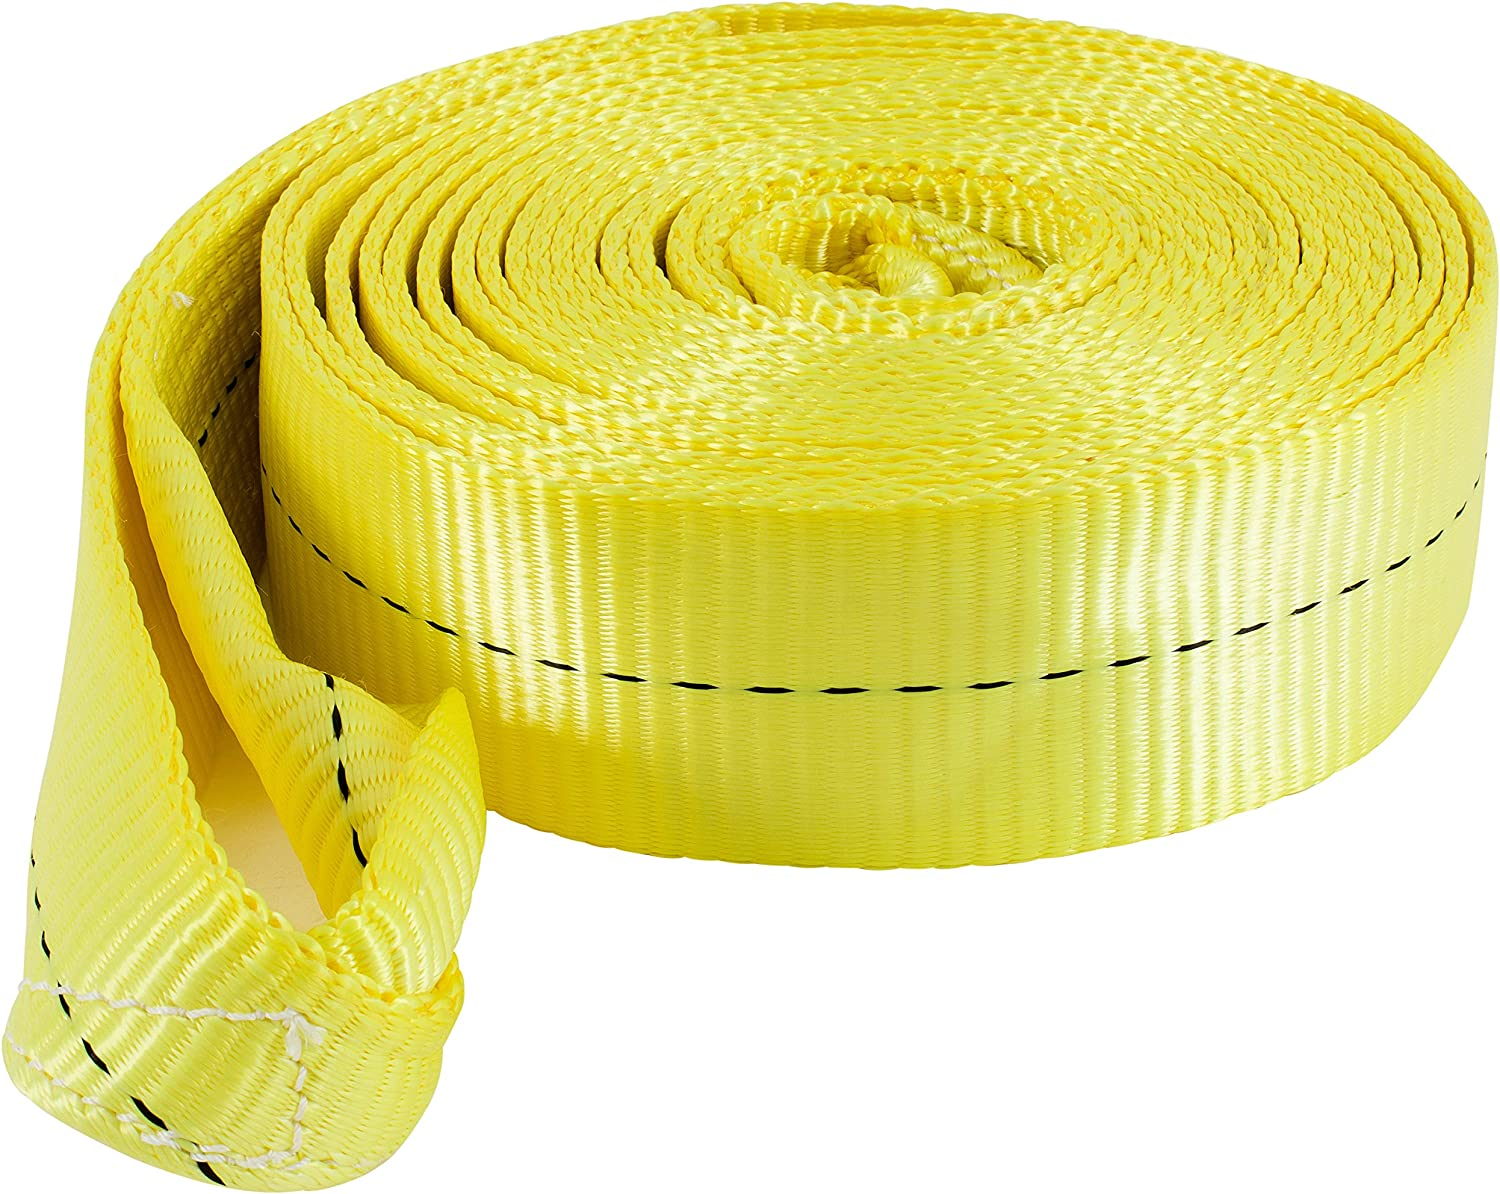 Max Vehicle Weight Keeper 89933 30 x 3 Vehicle Recovery Strap 15,000 lbs